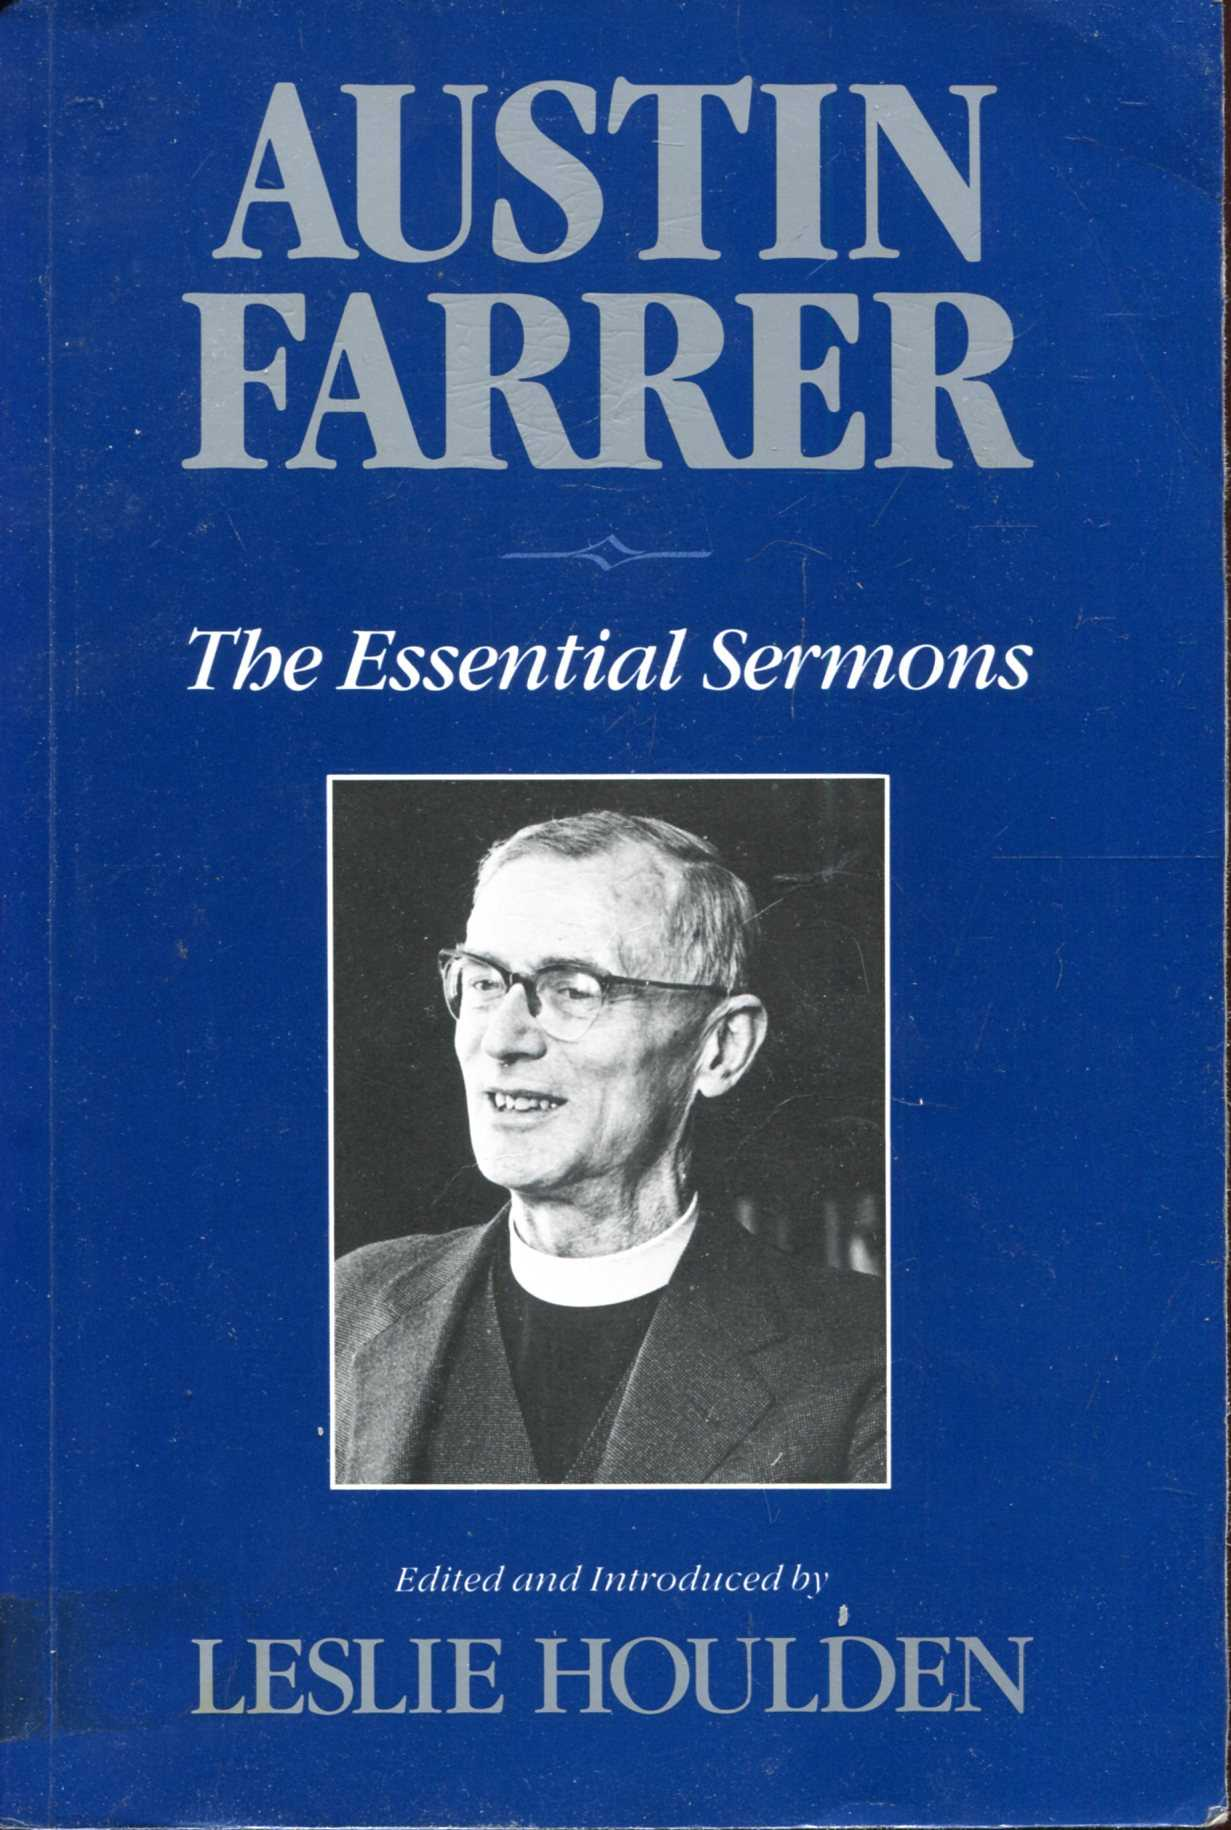 Image for Austin Farrer-The Essential Sermons